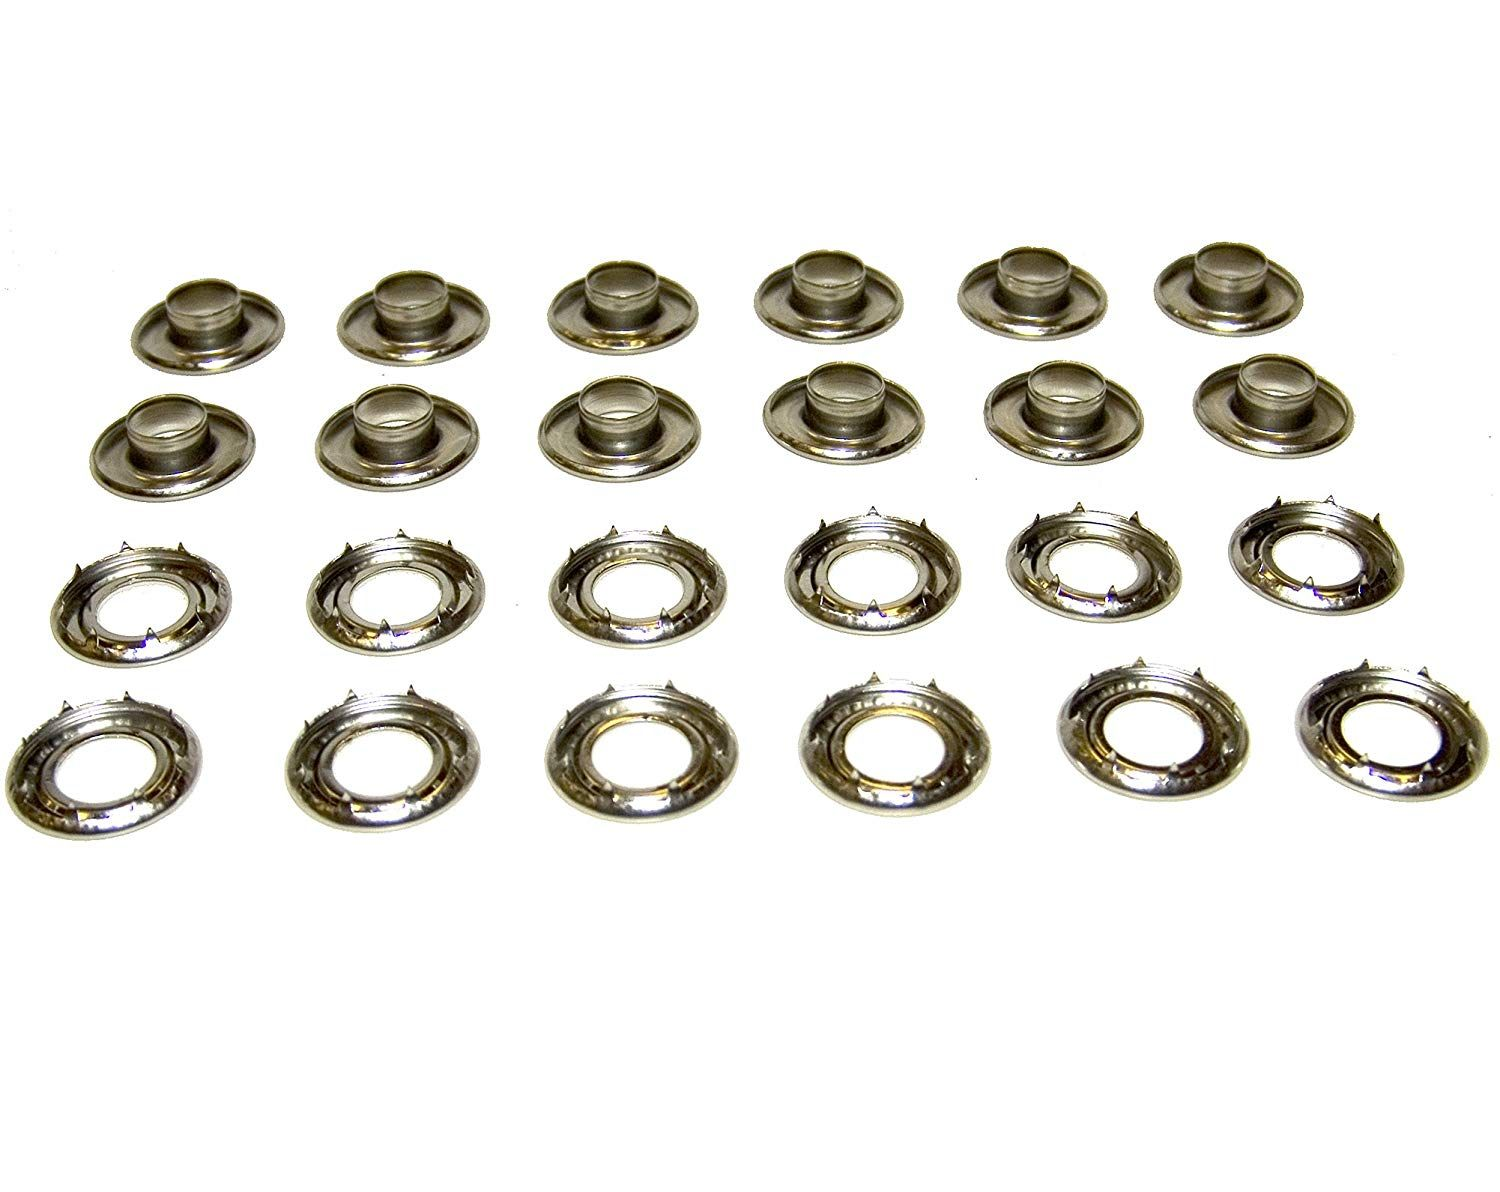 Grommets 4rolled Rim Spur Stainless Steel Heavy Duty 12 Piece Set Grommet Kits Amazon Canada Grommets Ear Grommets Setting Tools